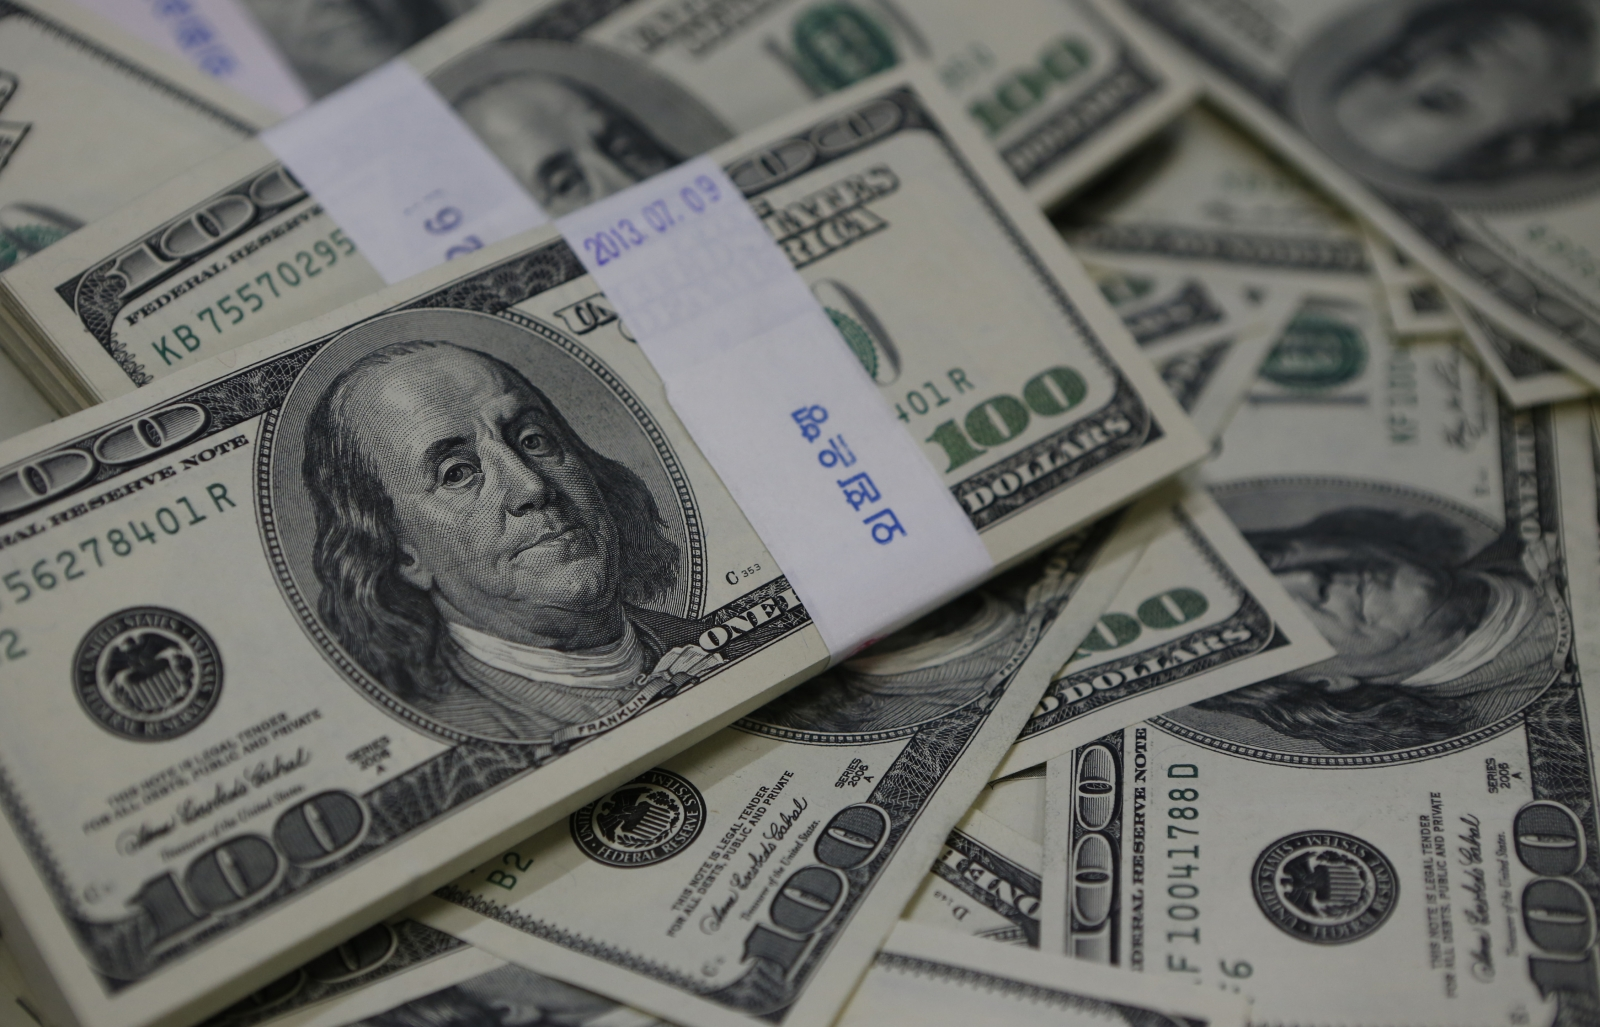 WealthInsight say 1 person in 35 is a millionaire, according to a new survey